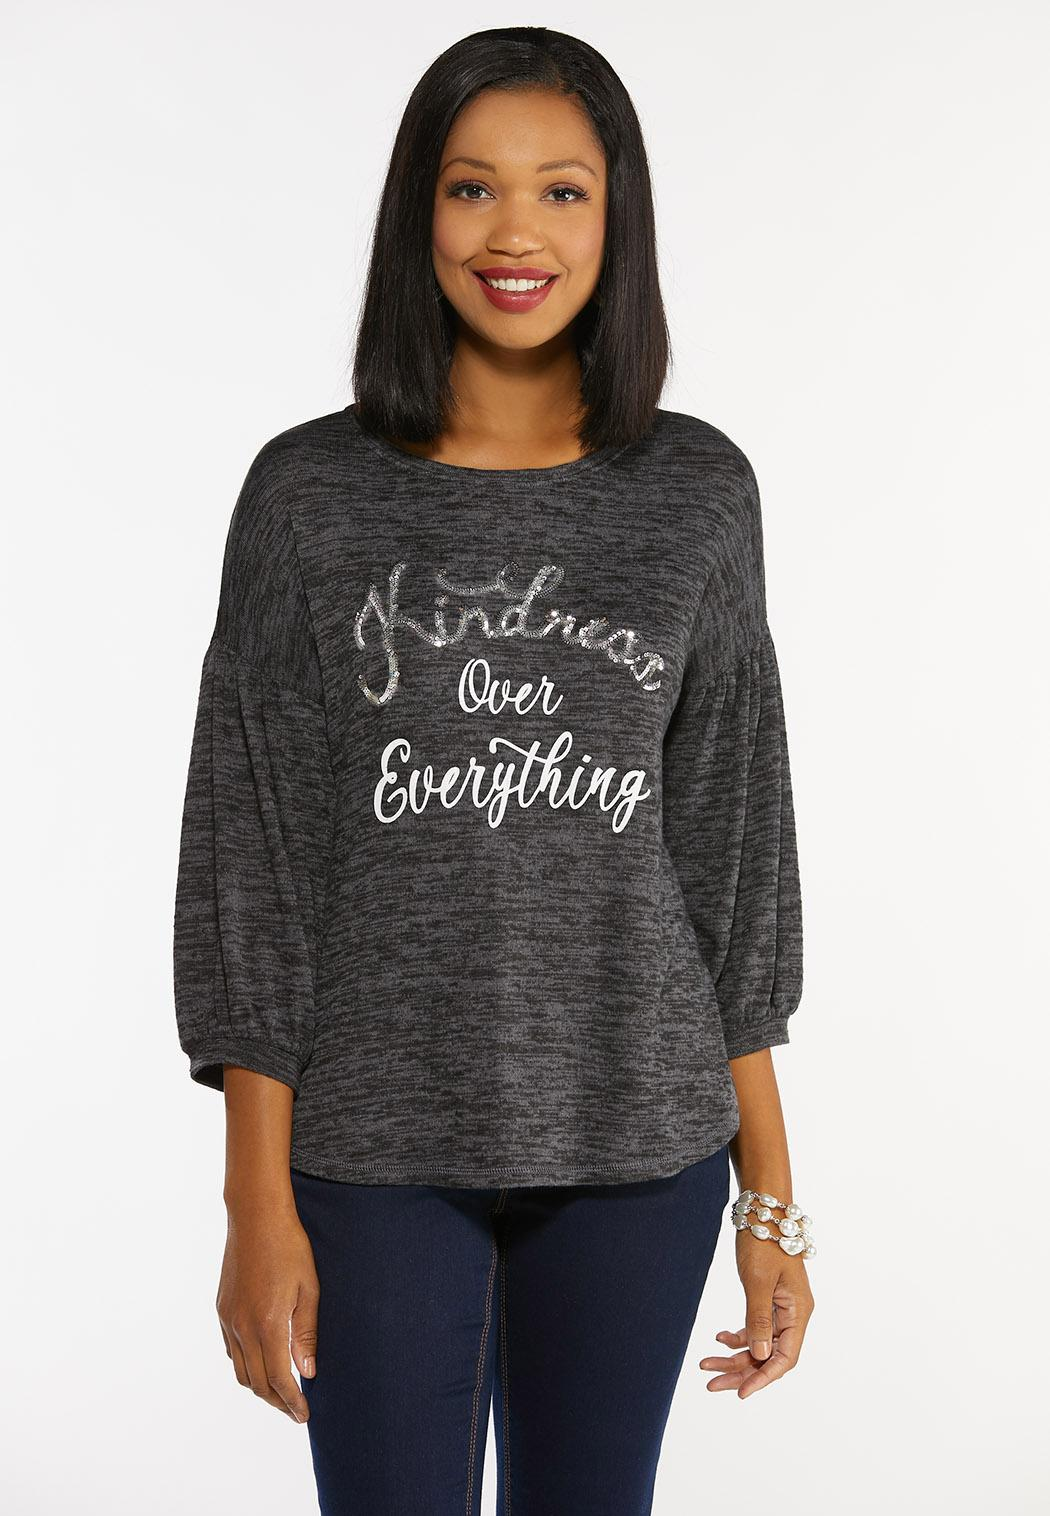 Sequin Kindness Top